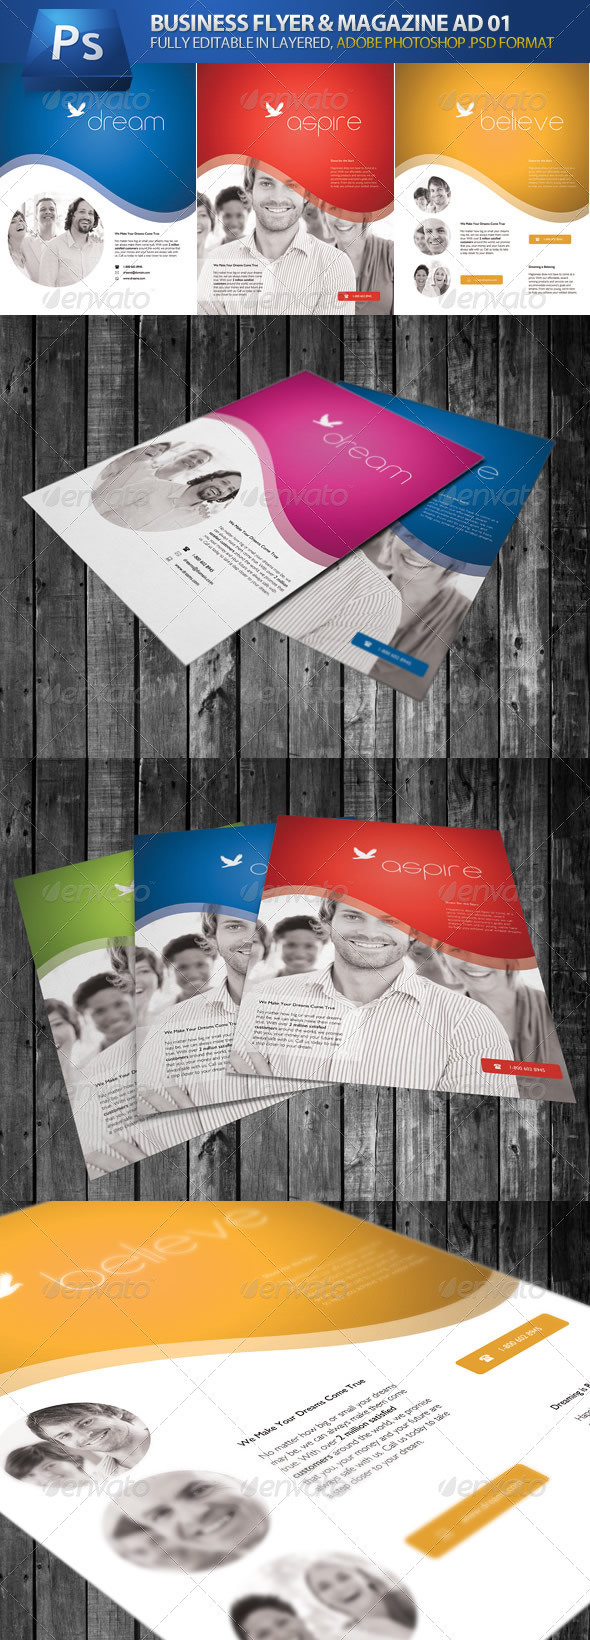 GraphicRiver Business Flyer & Magazine Ad 01 2835698